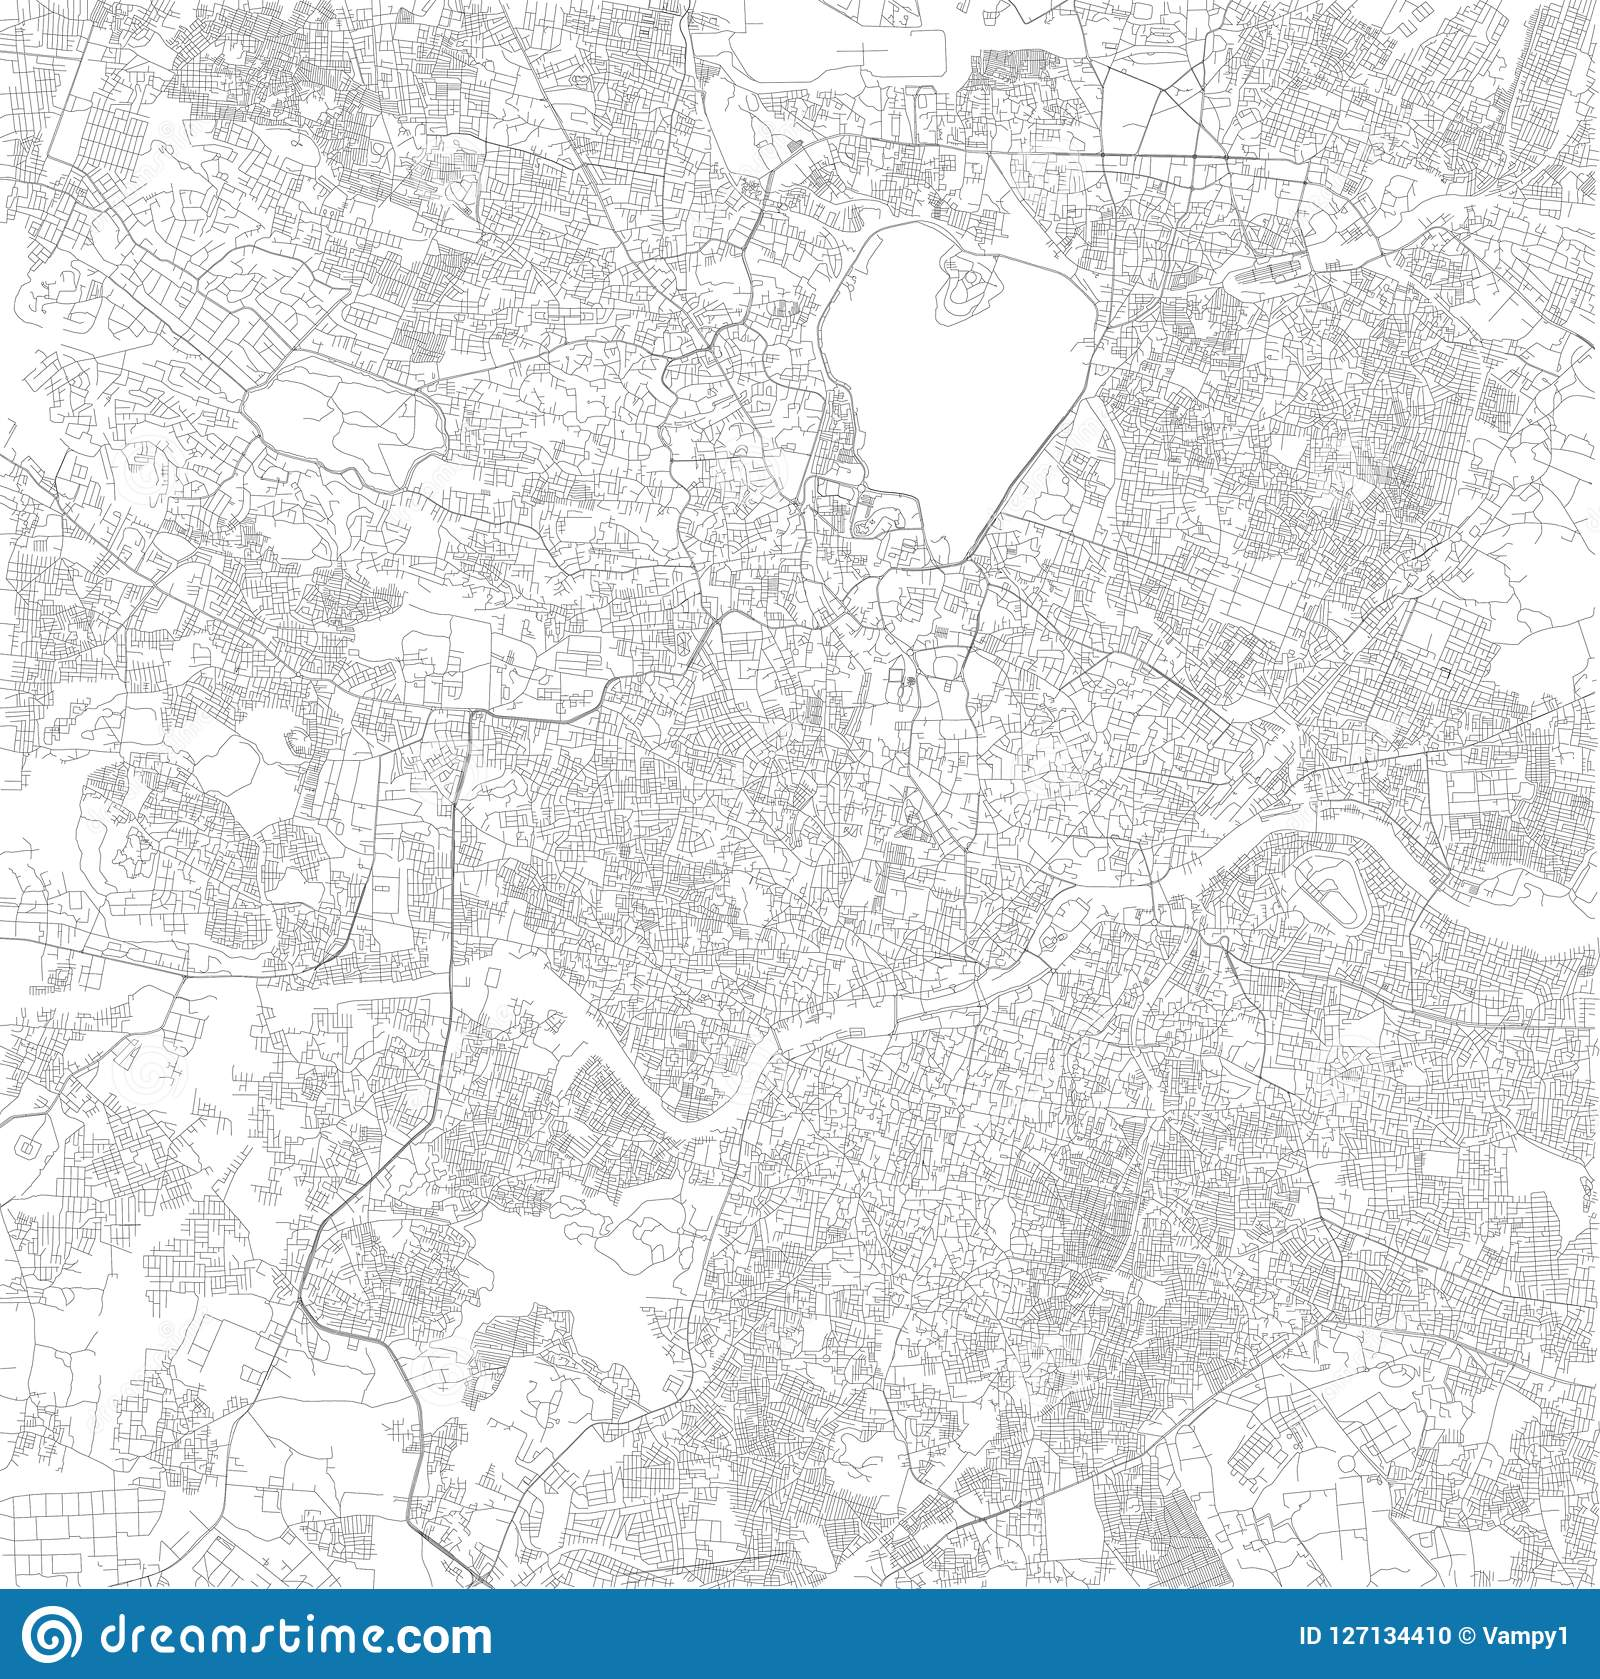 Hyderabad On India Map.Map Of Hyderabad Telangana Satellite View Black And White Map